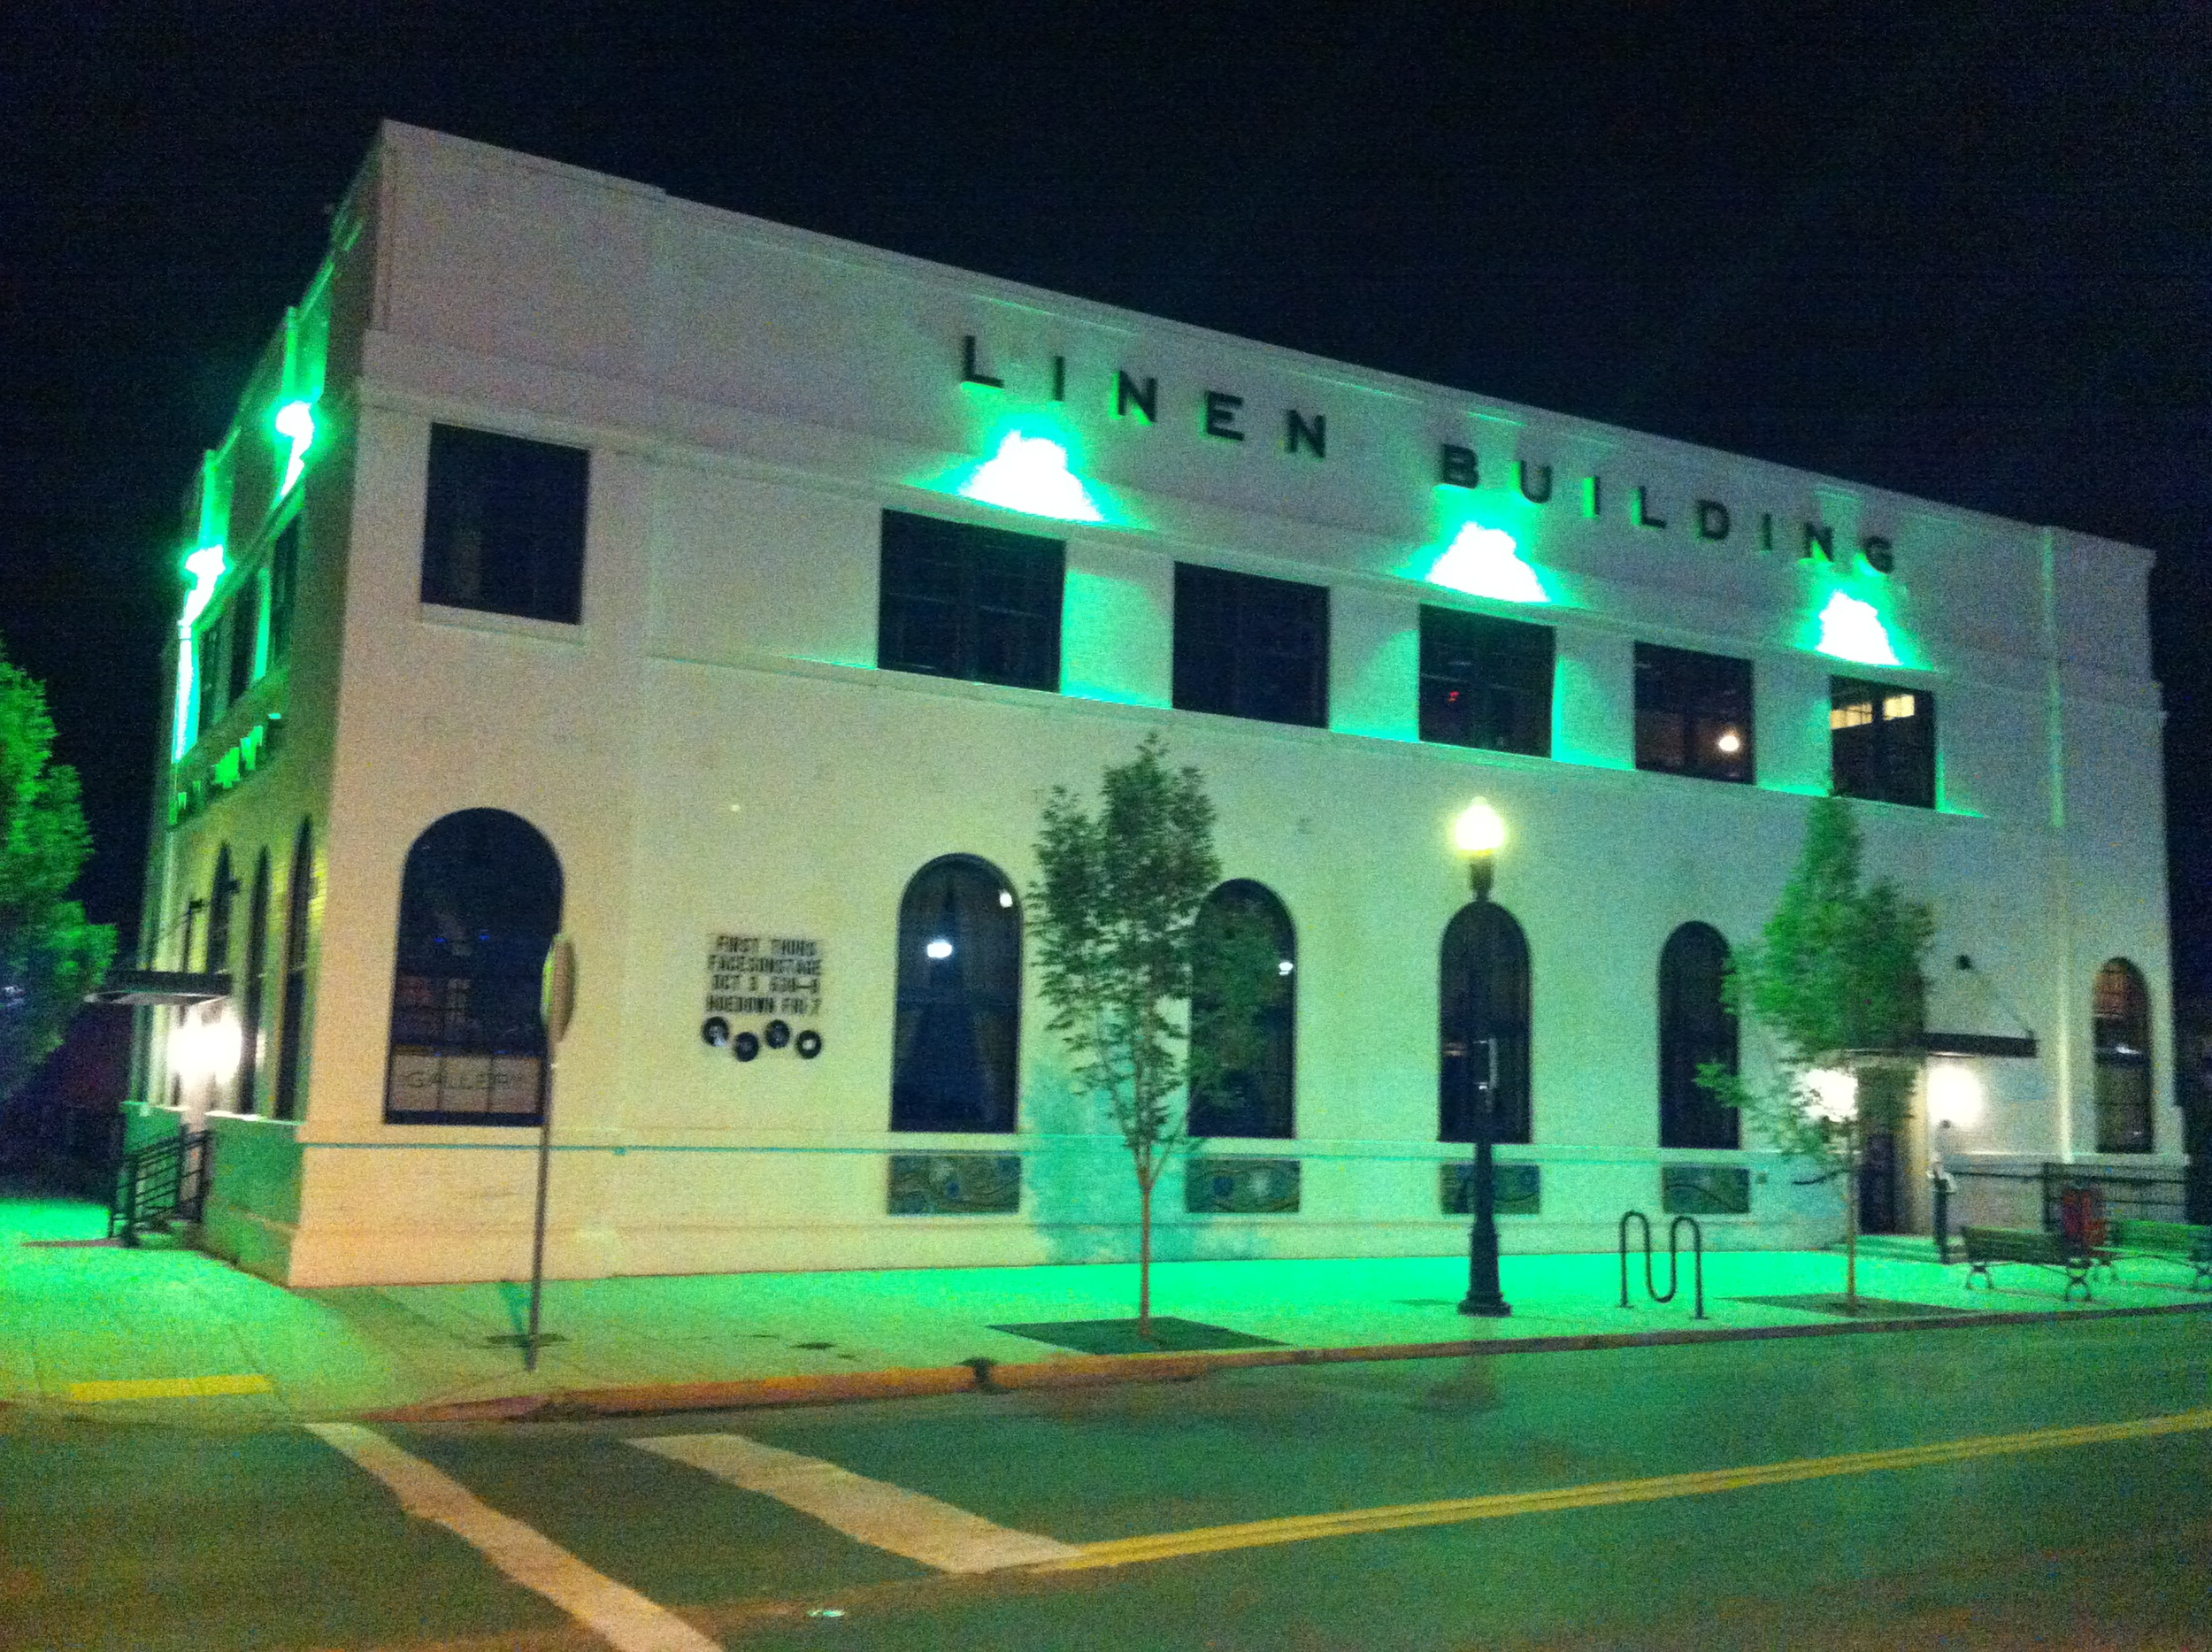 The historic Linen Building at night.